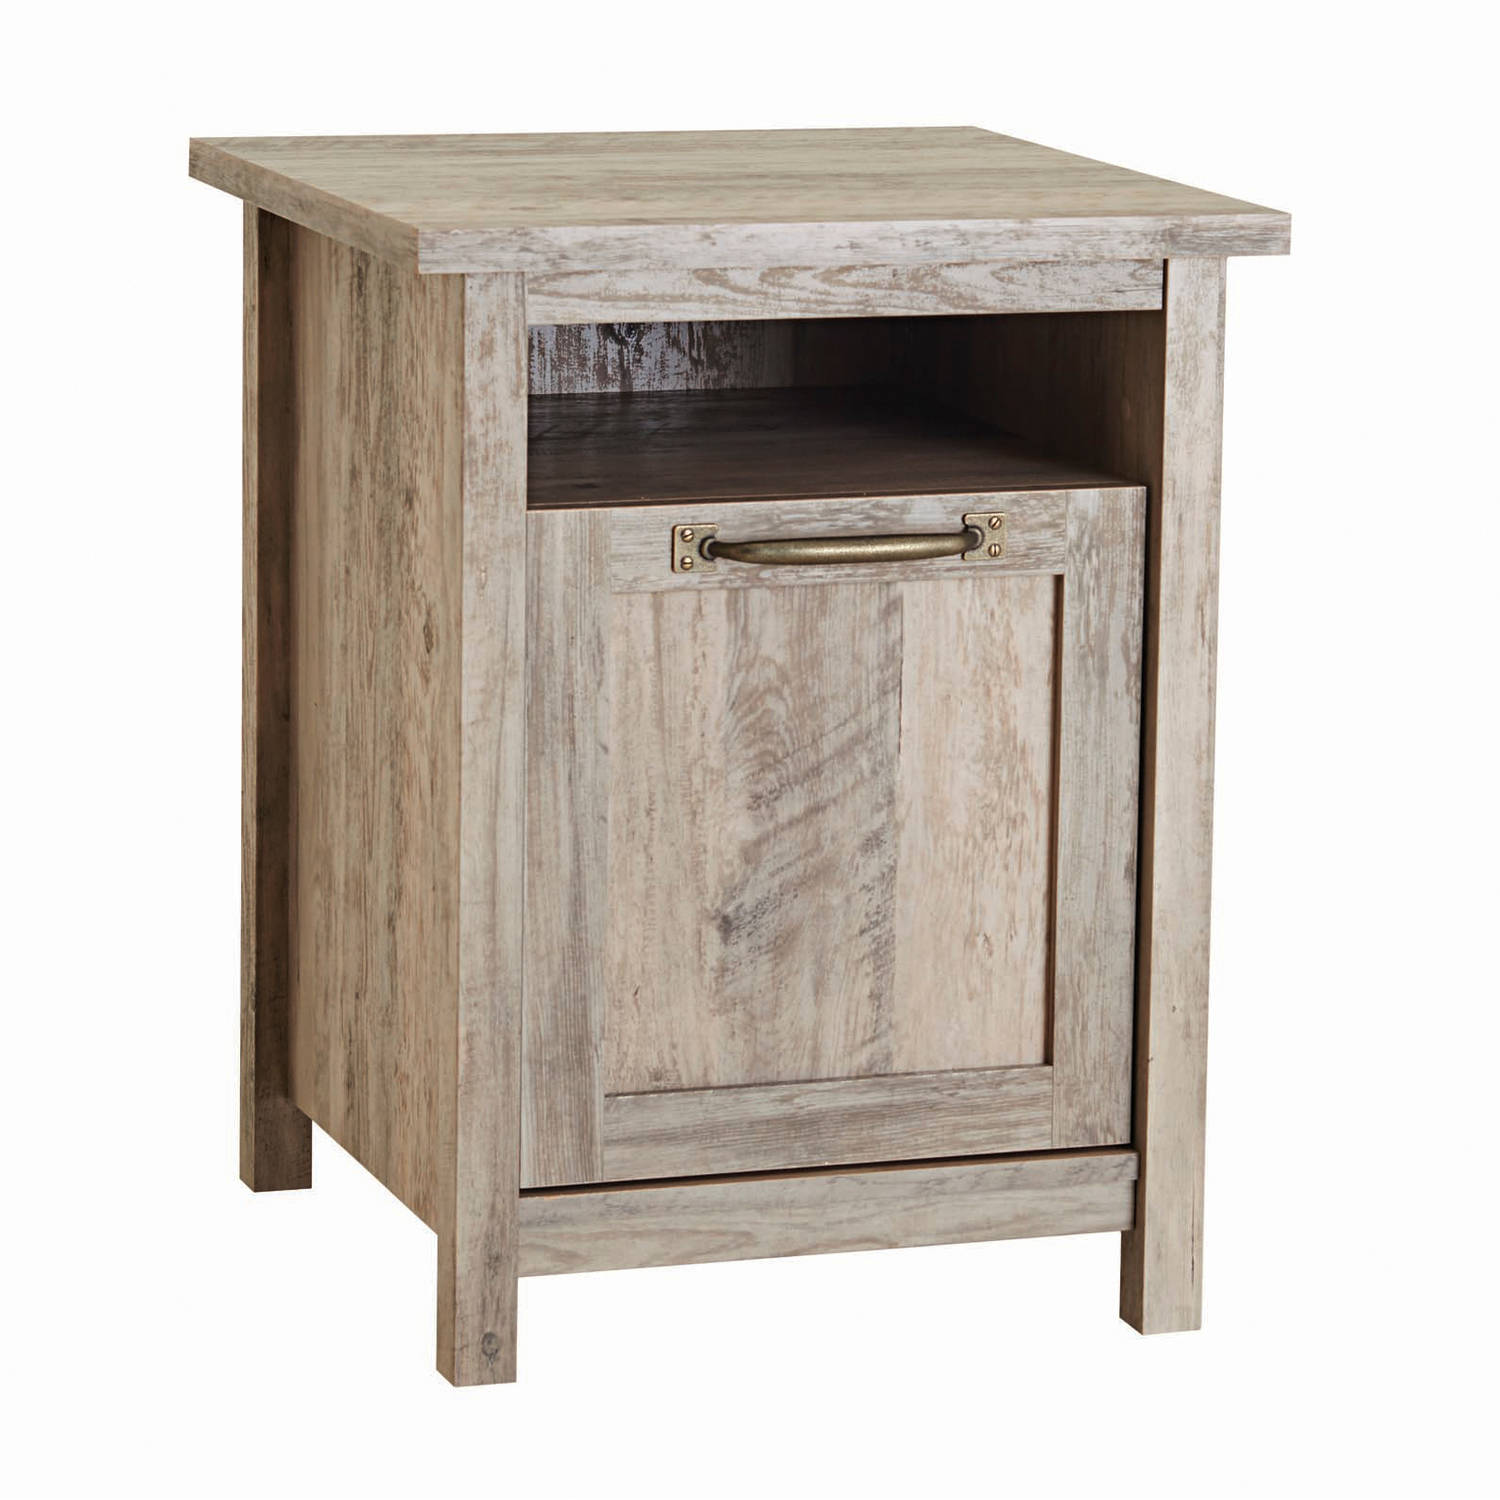 Better Homes And Gardens Modern Farmhouse Side Table, Rustic Gray Finish